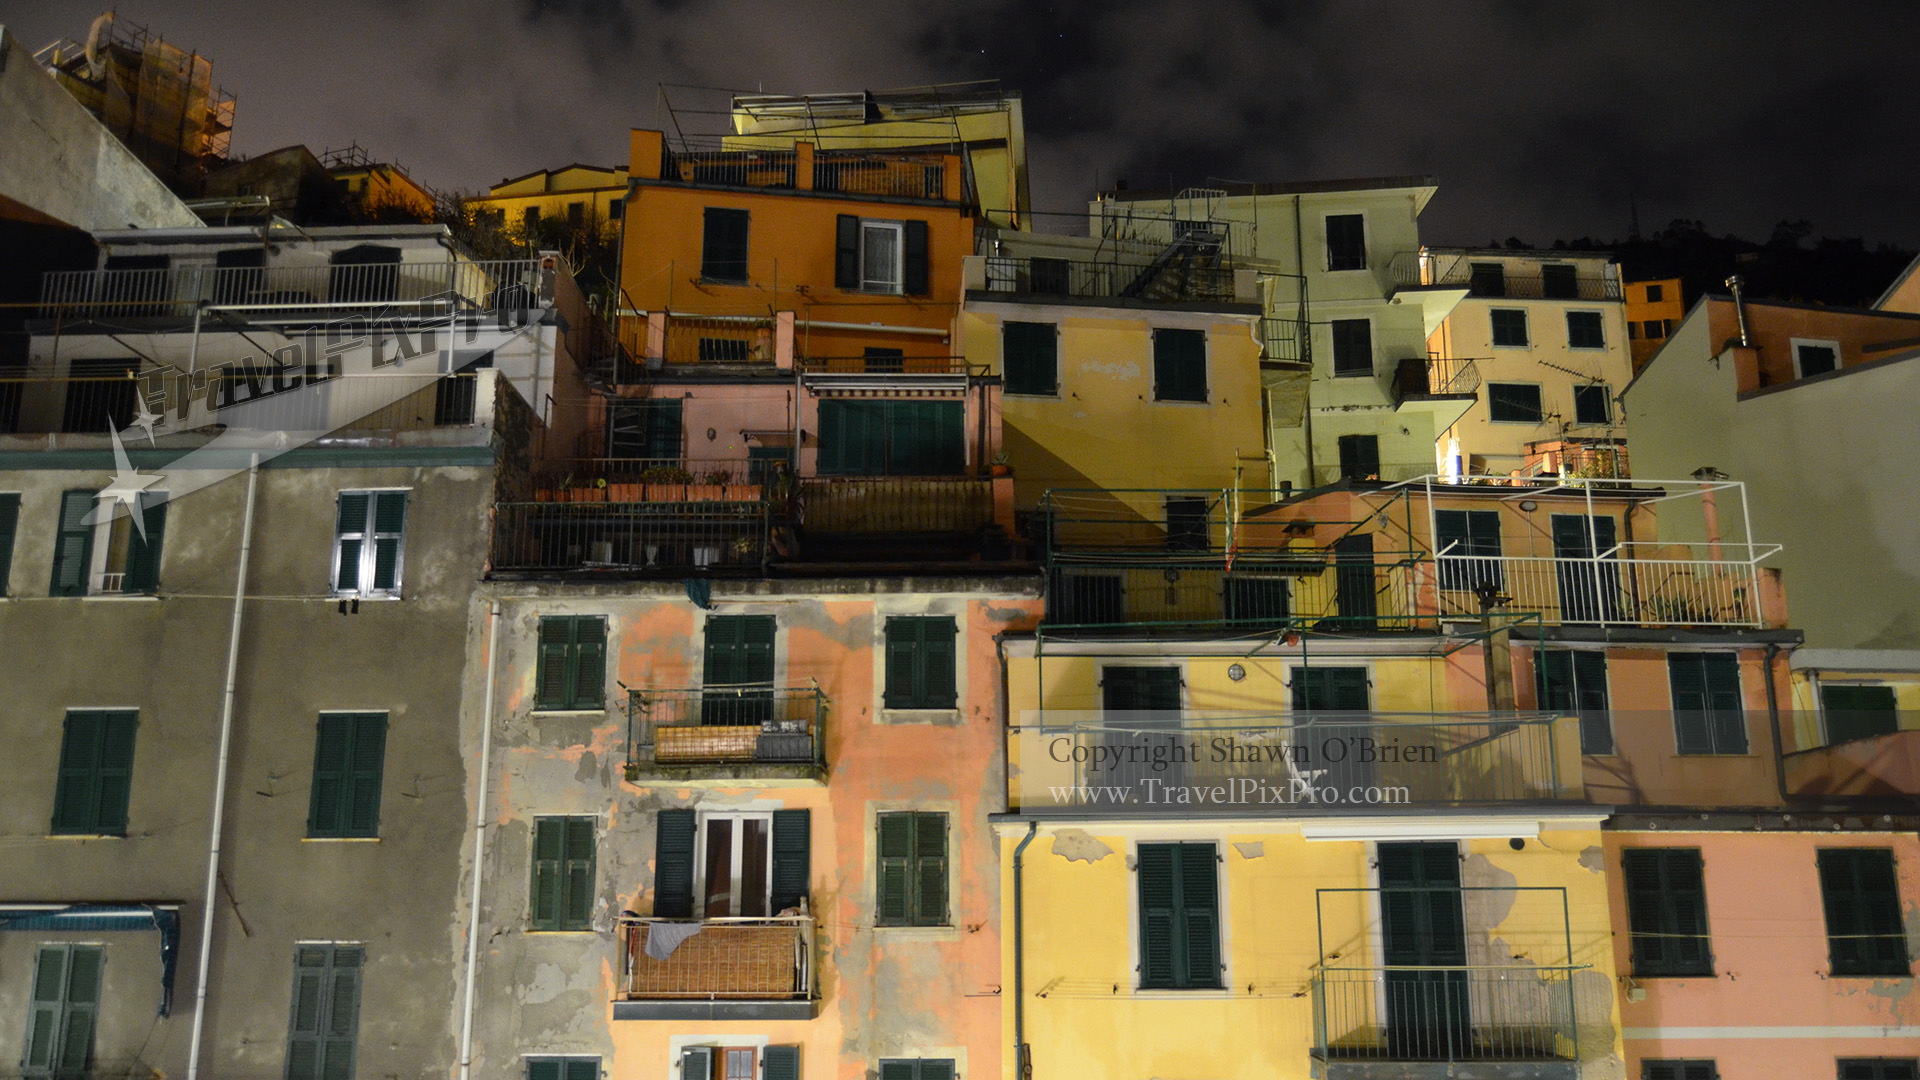 Riomaggiore Harbor Terraces at Night